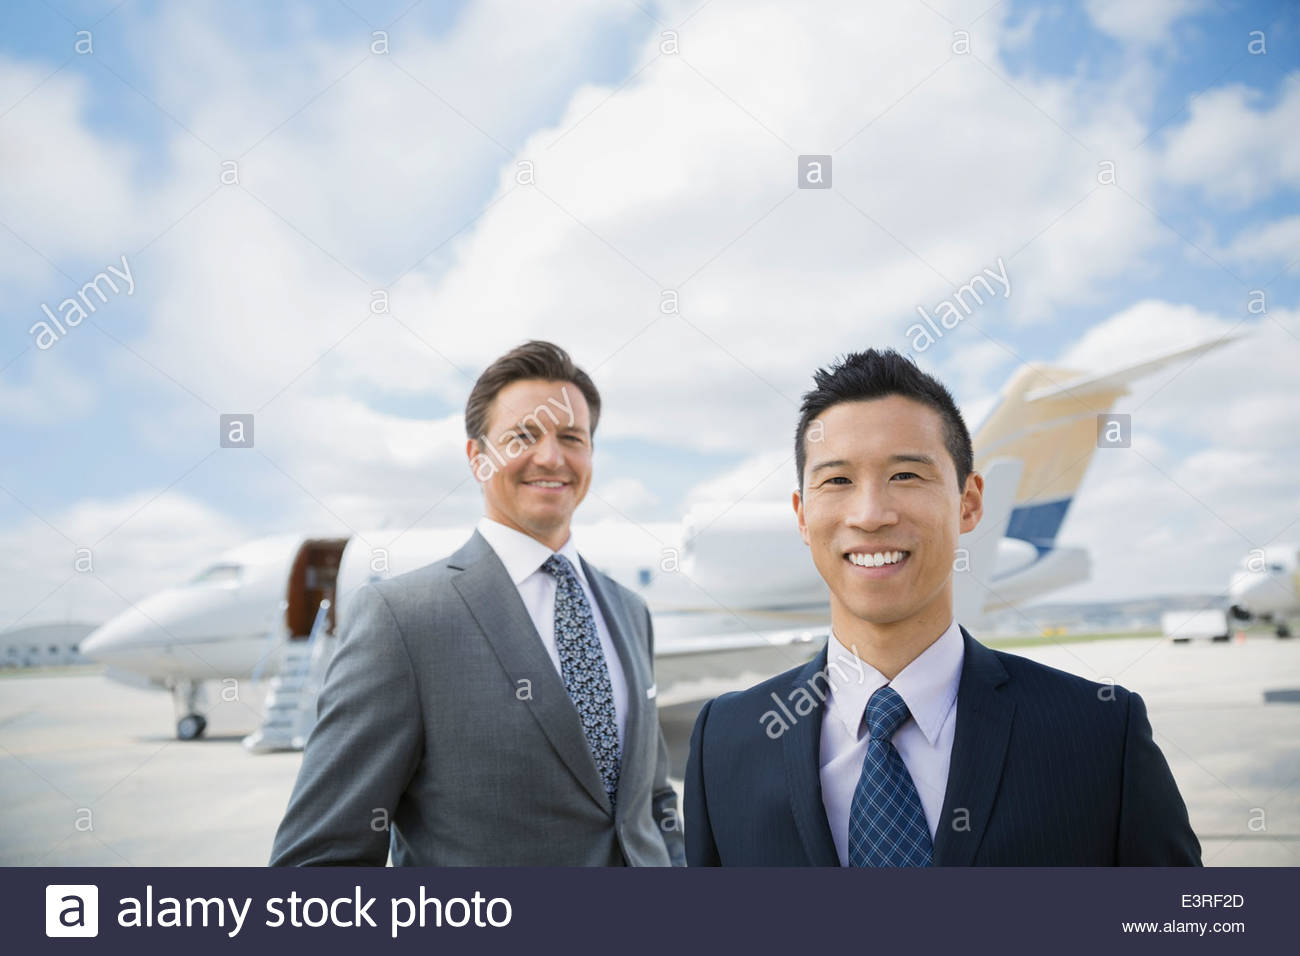 Portrait of businessmen on tarmac with corporate jet - Stock Image